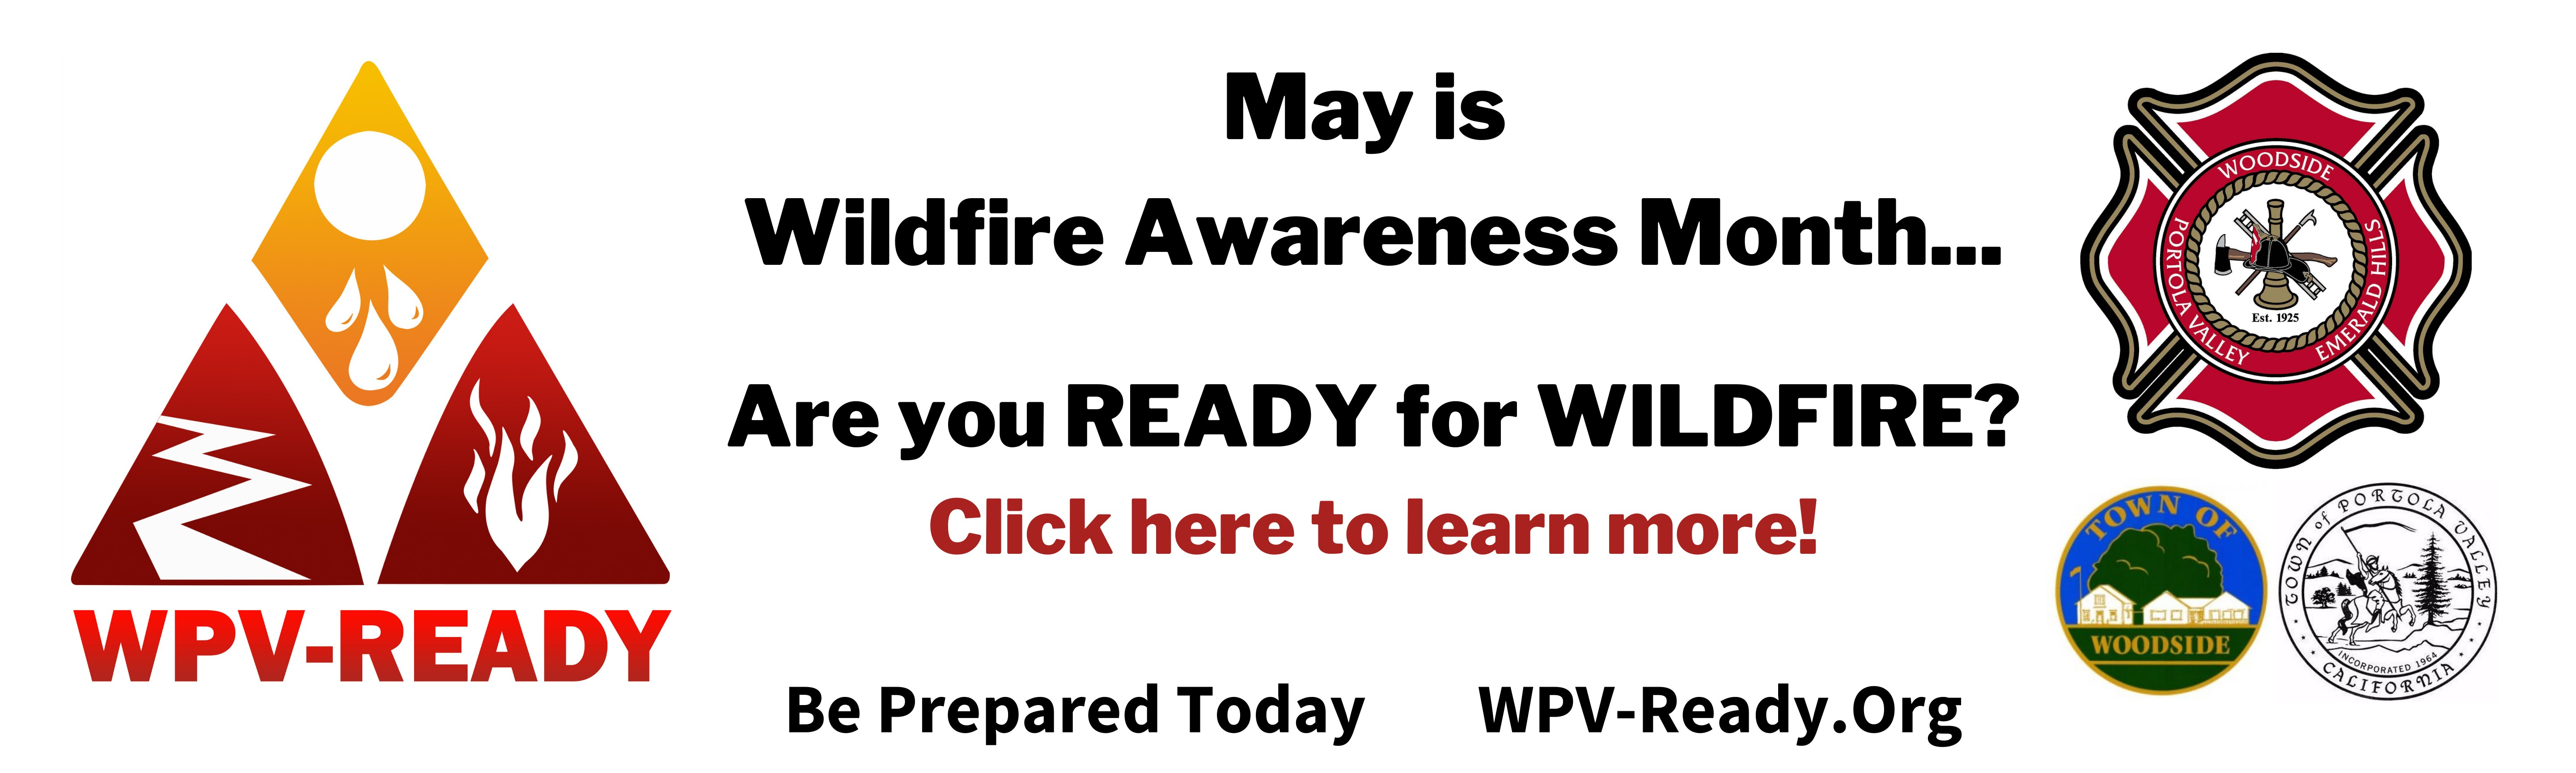 May is Wildfire Awareness Month - Are You Ready?